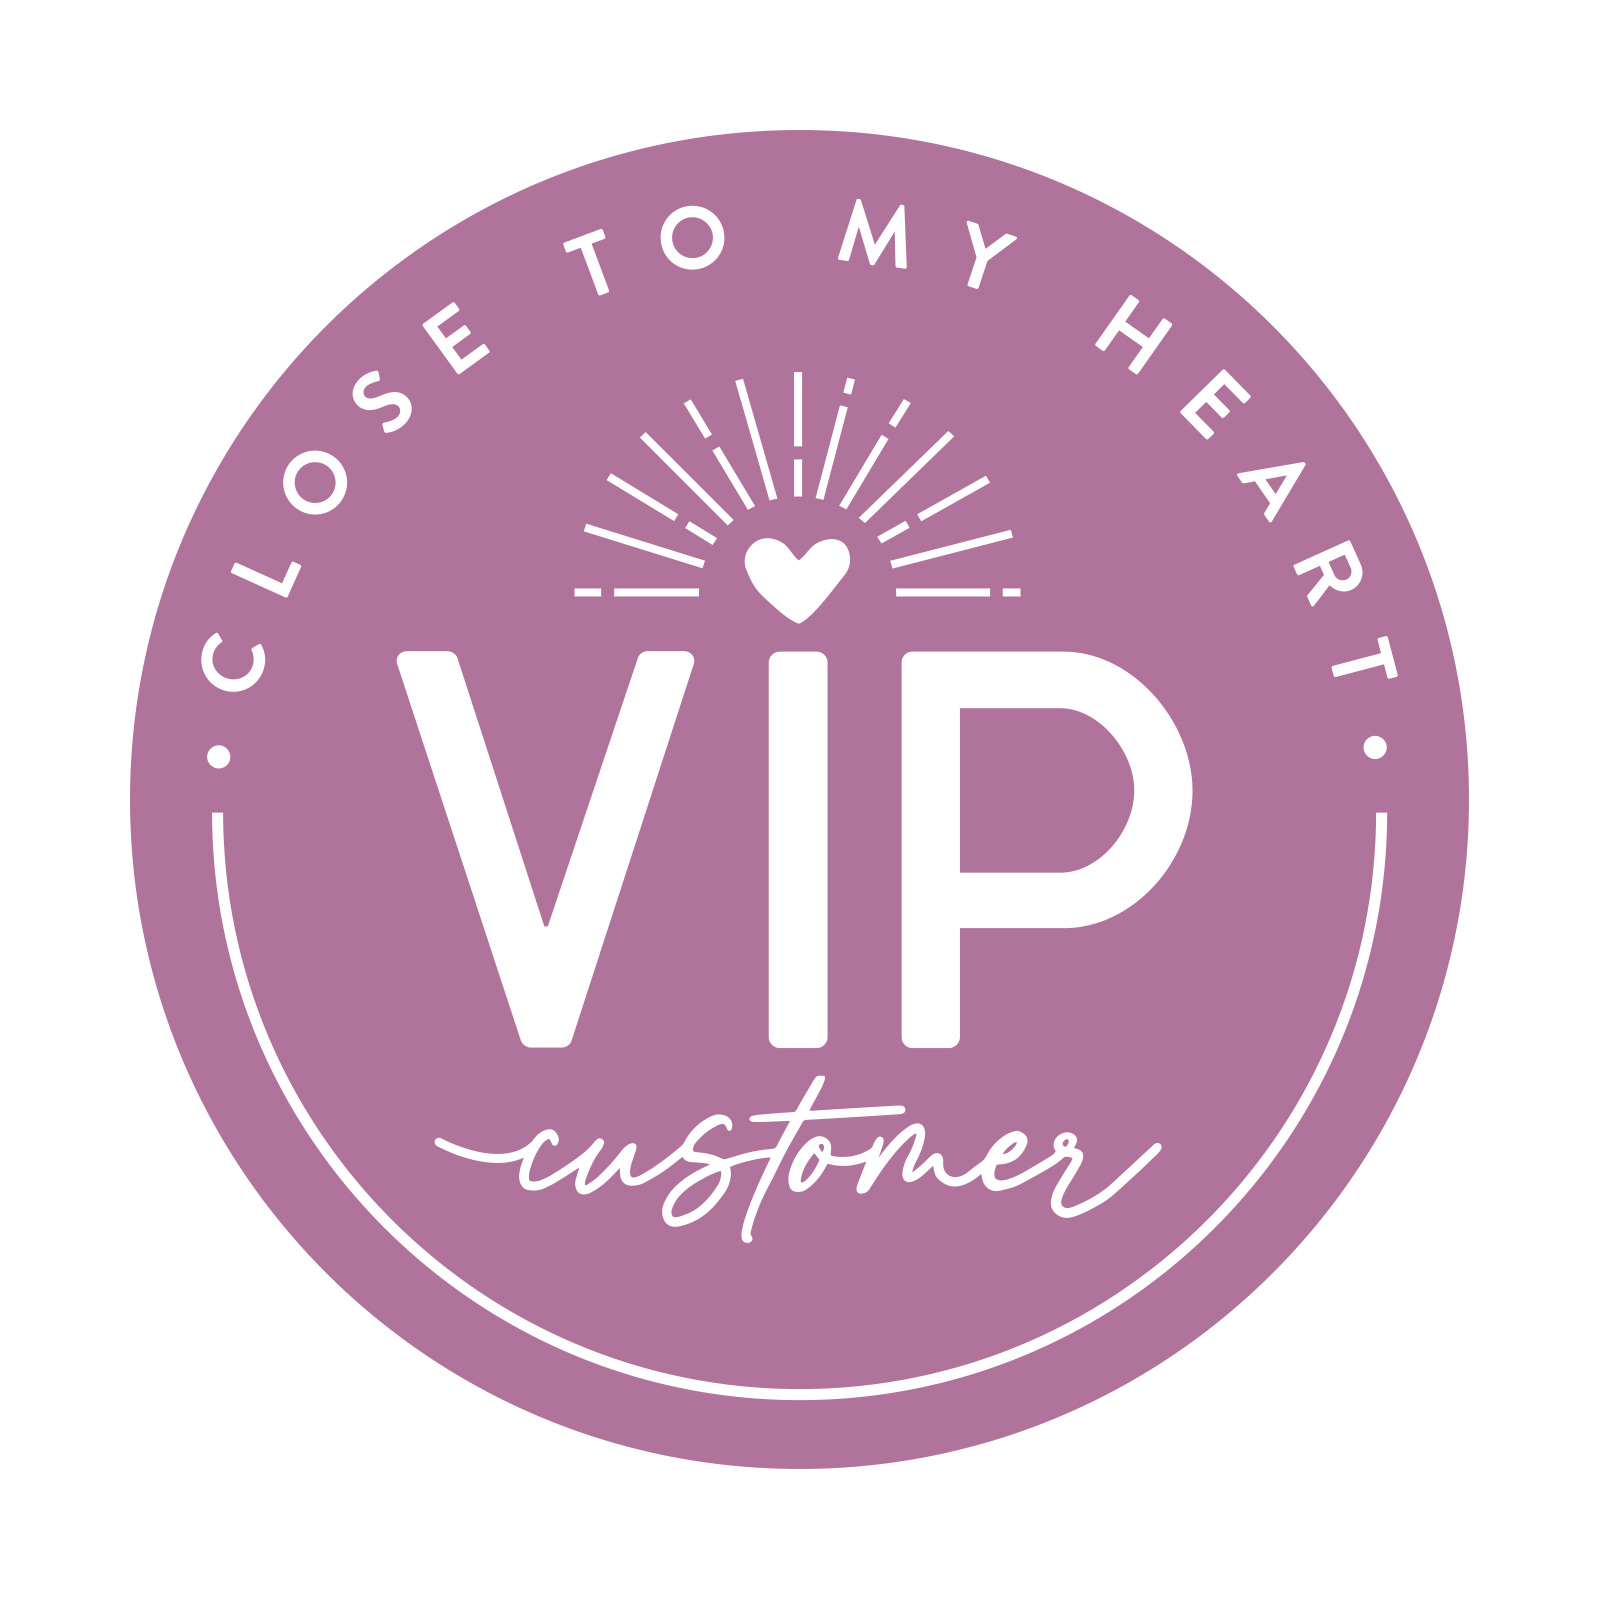 Click here to be a VIP Customer!